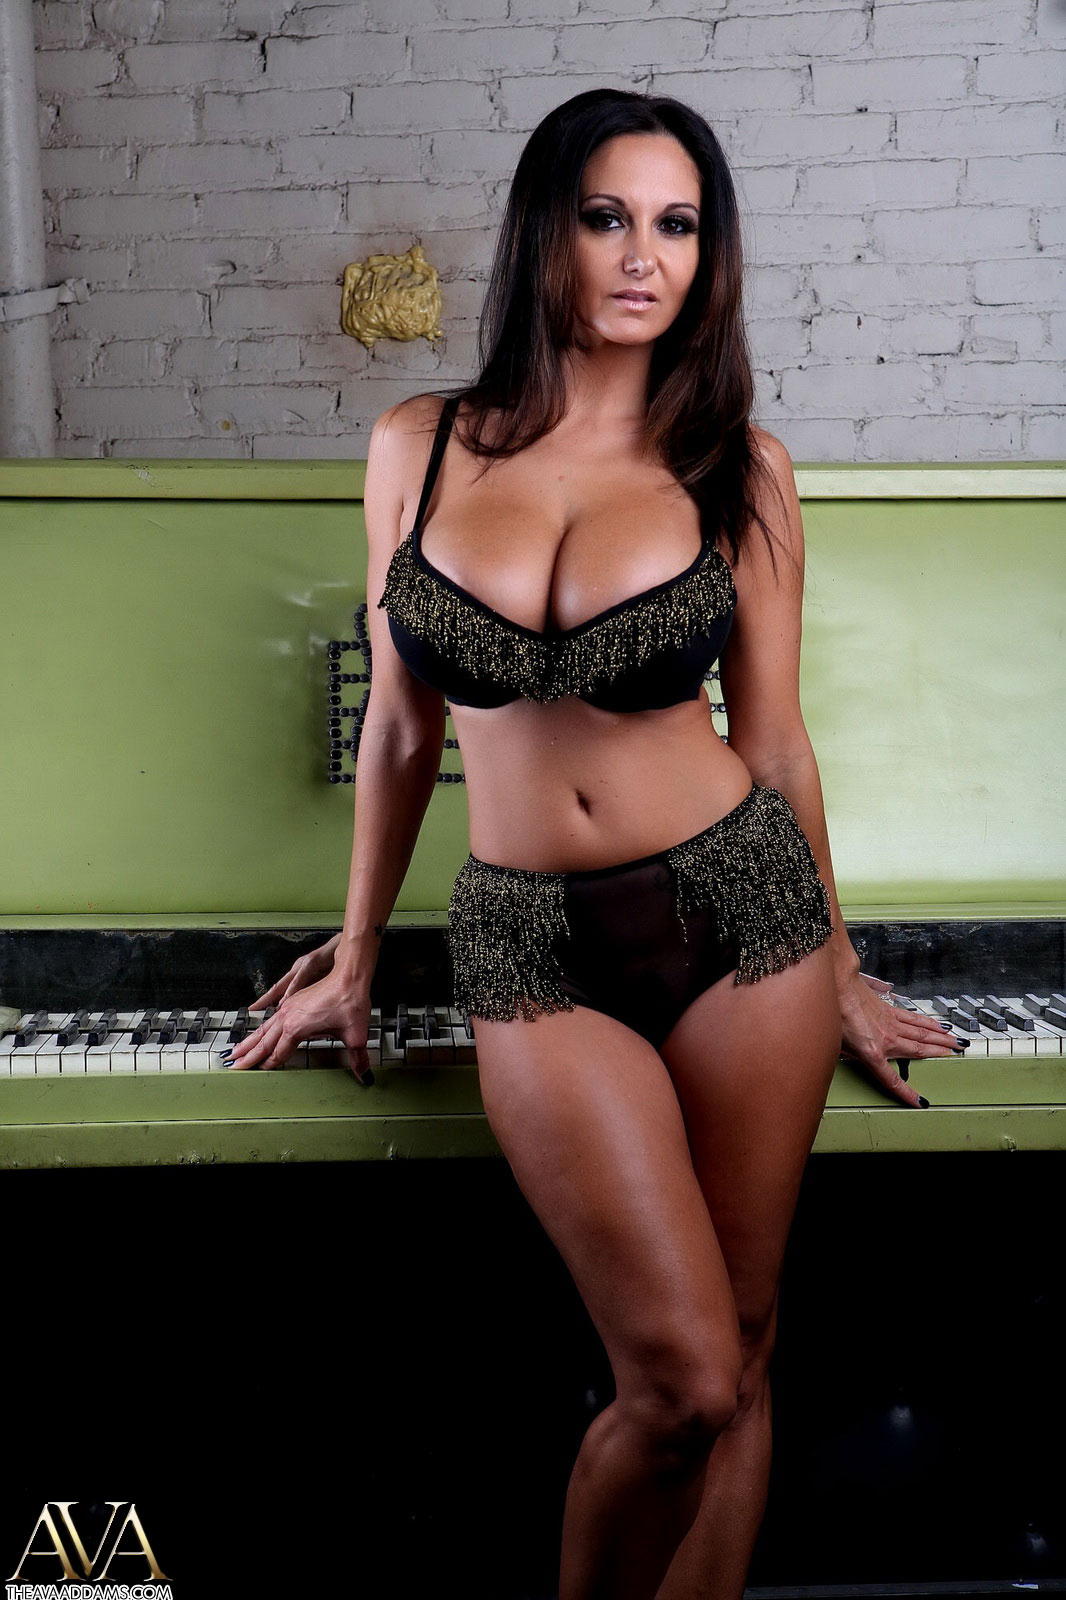 image Piano lesson for busty plump milf